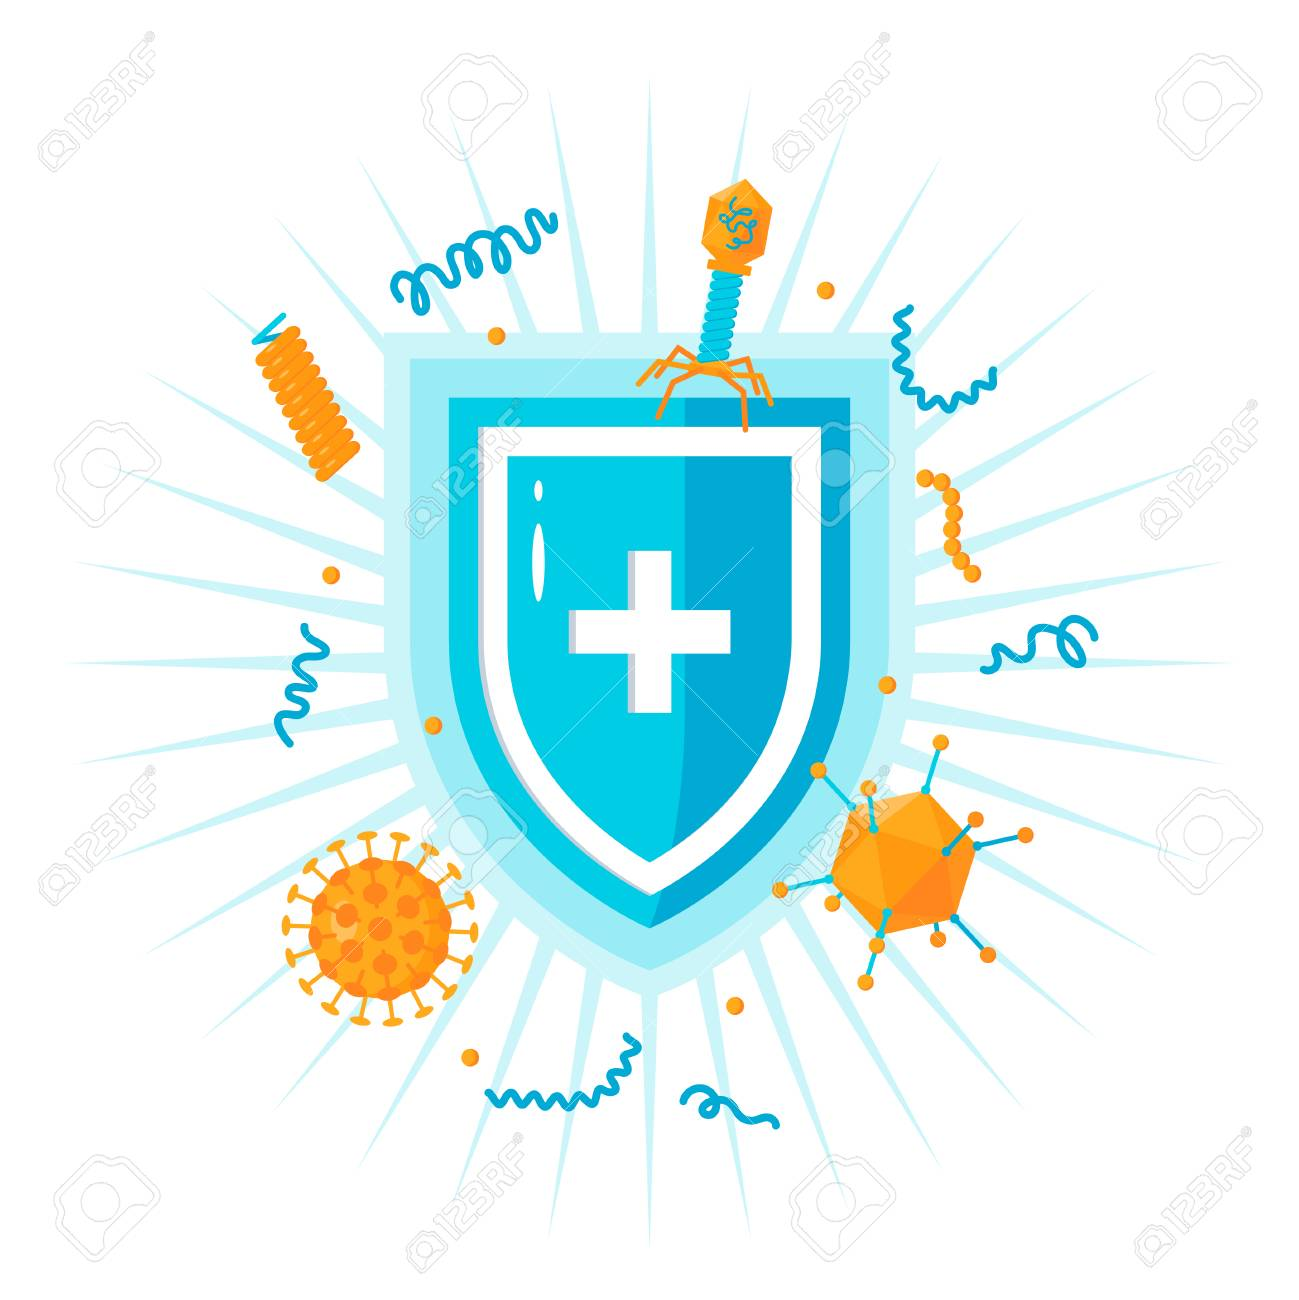 Immune system concept. Medical shield surrounded by viruses and bacterium - 115321426